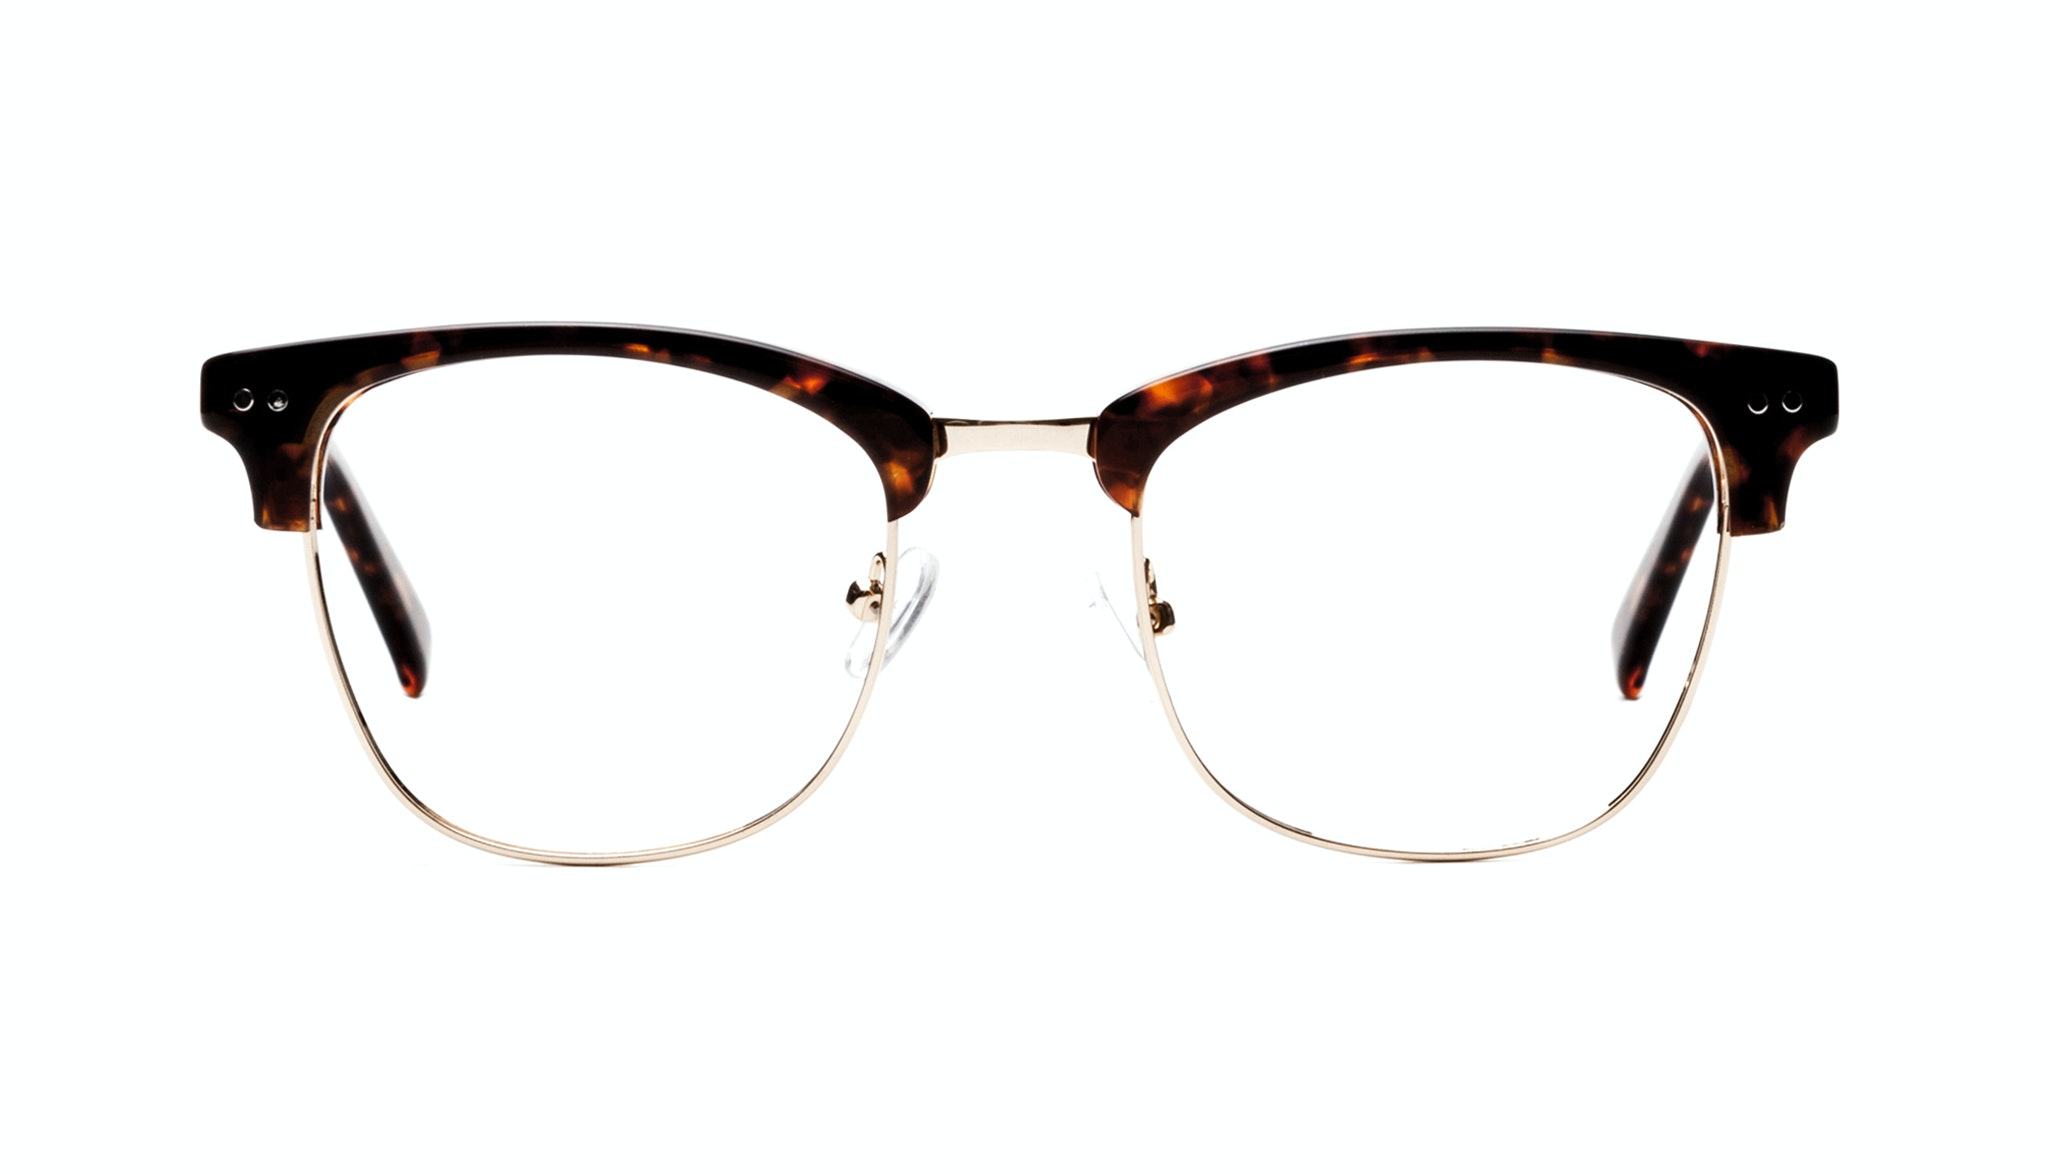 Affordable Fashion Glasses Square Eyeglasses Men Women Lift Gold Sepia Front